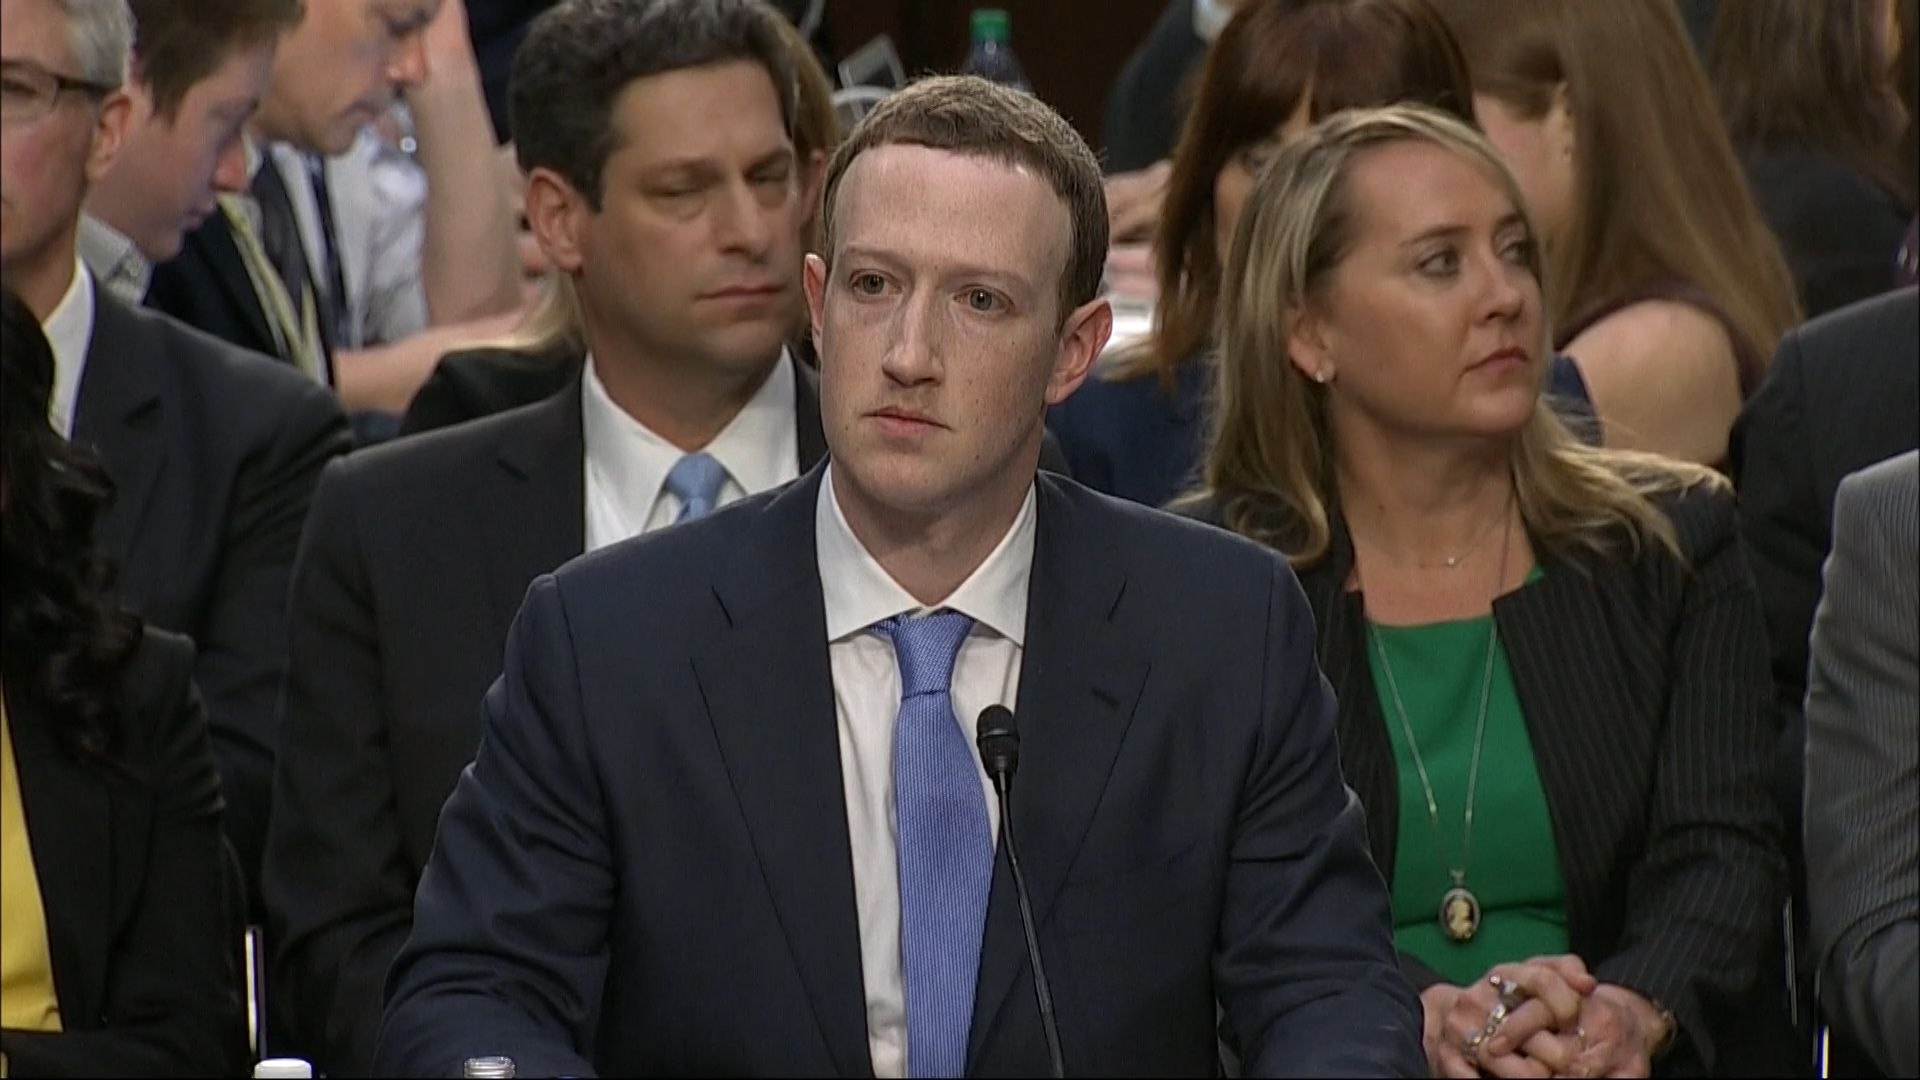 Mark_Zuckerberg_Testimony.01_41_33_17.Still001